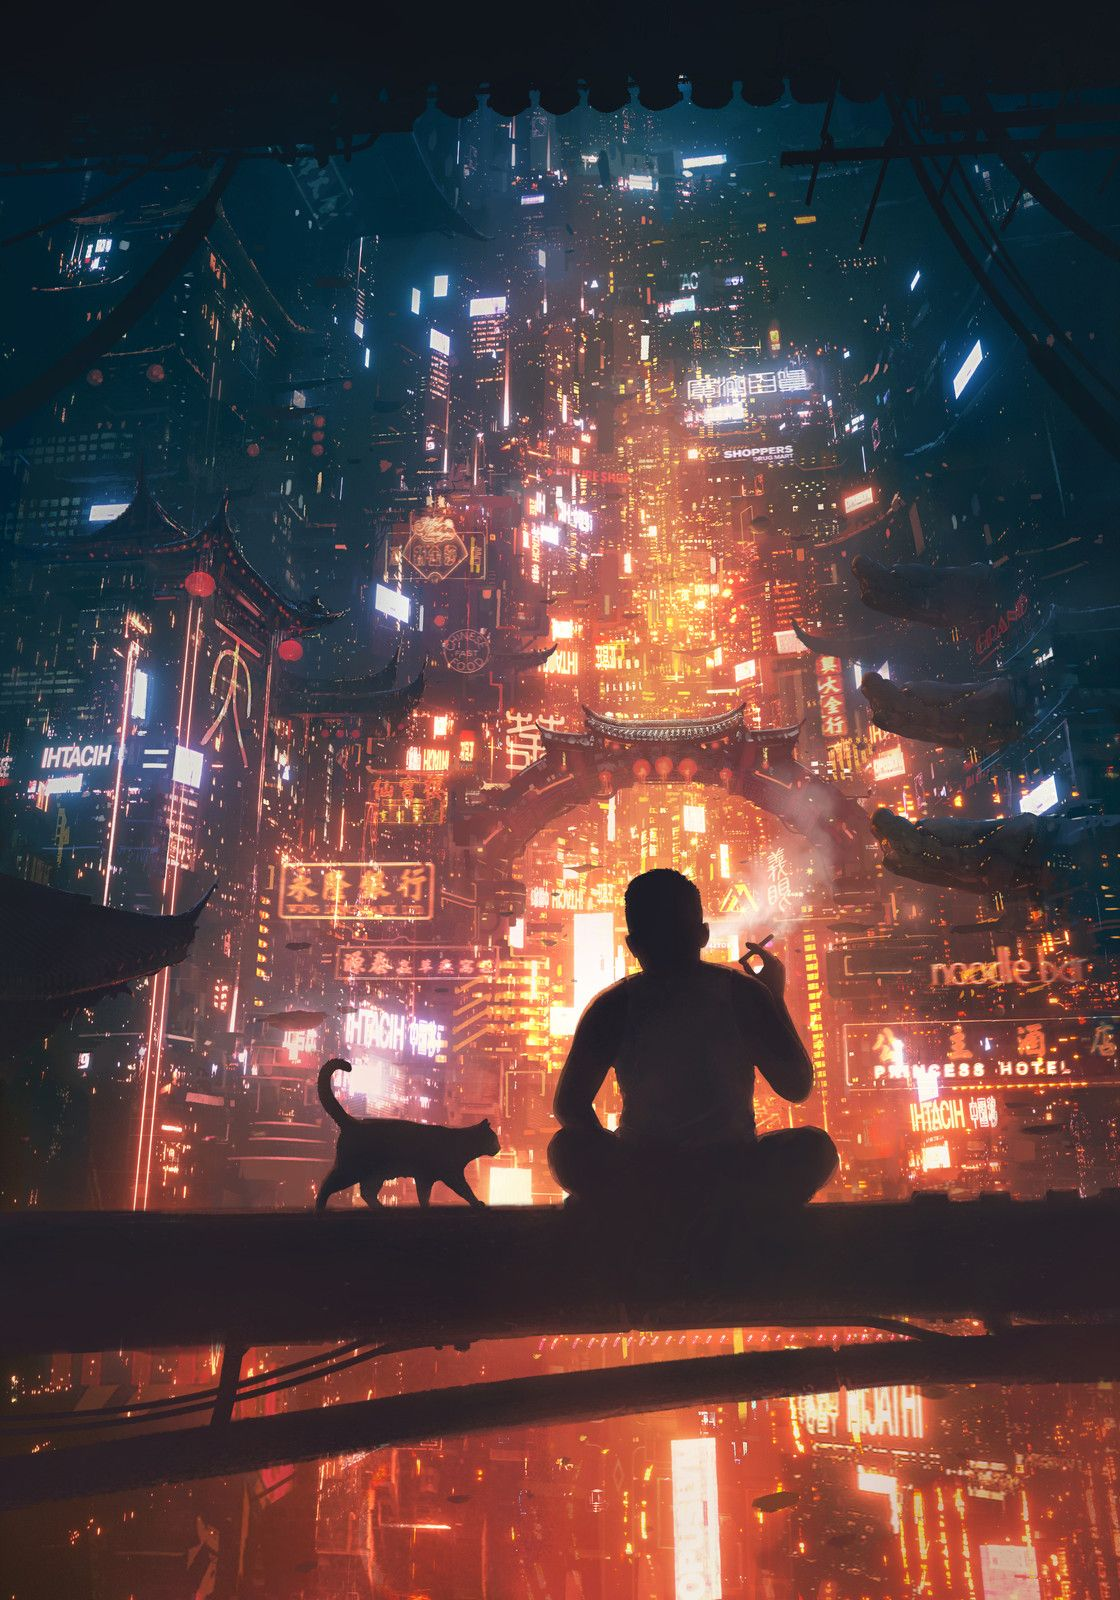 Pin by Ân Đê Tê Tê on Products I Love Cyberpunk city